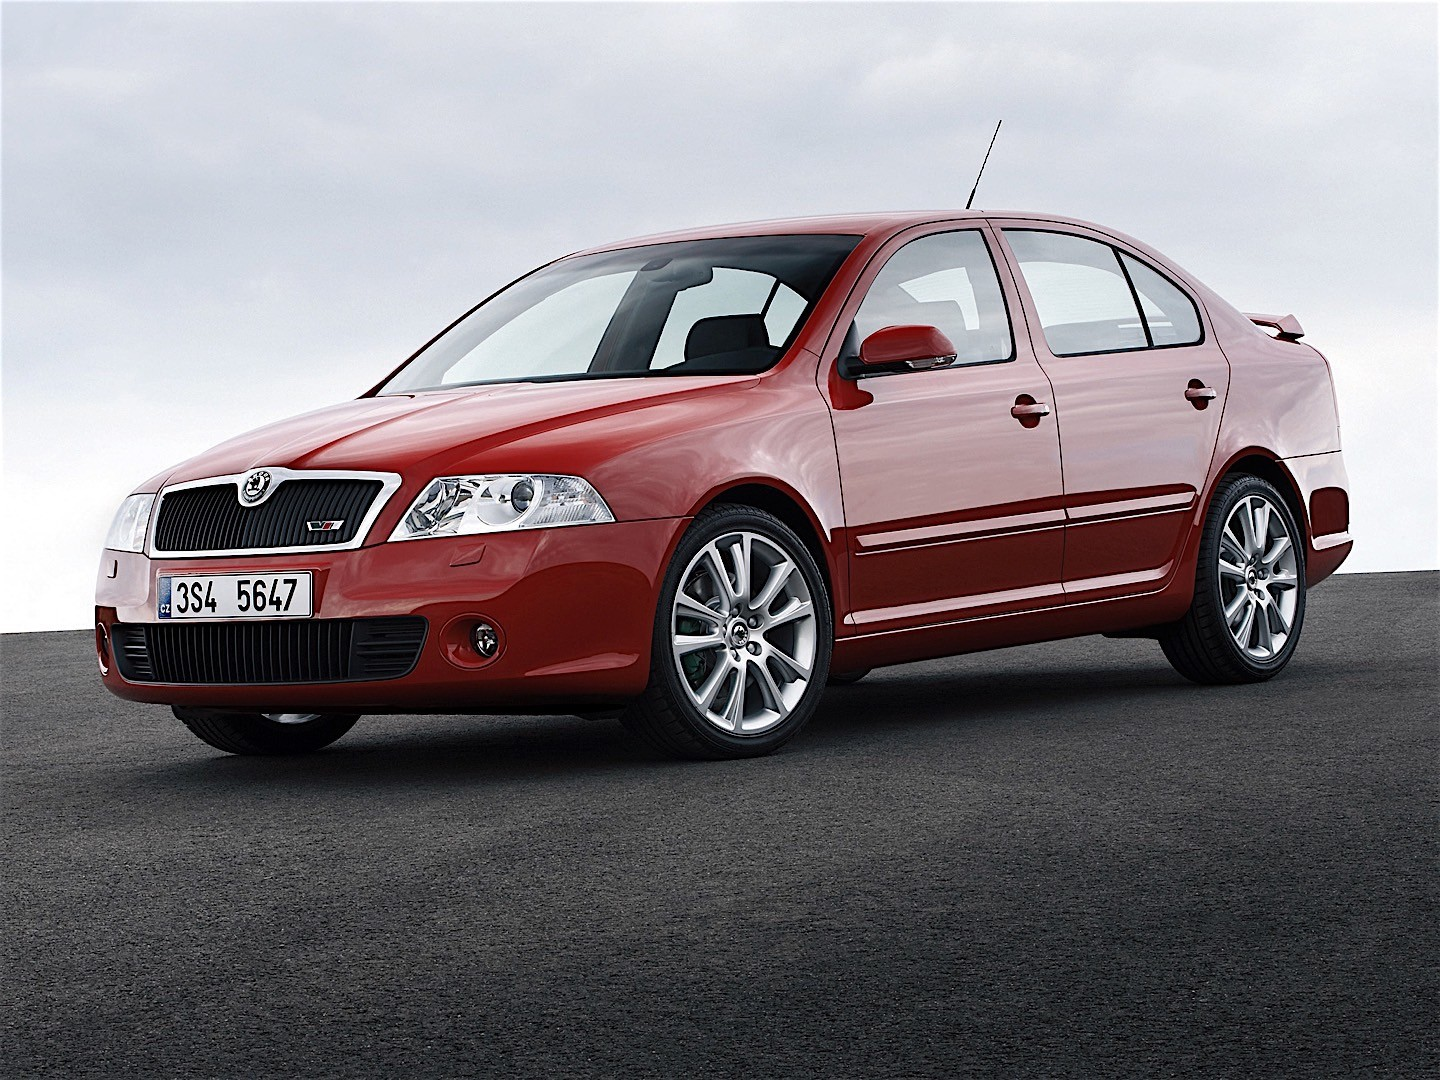 skoda octavia ii rs specs photos 2005 2006 2007 2008 autoevolution. Black Bedroom Furniture Sets. Home Design Ideas